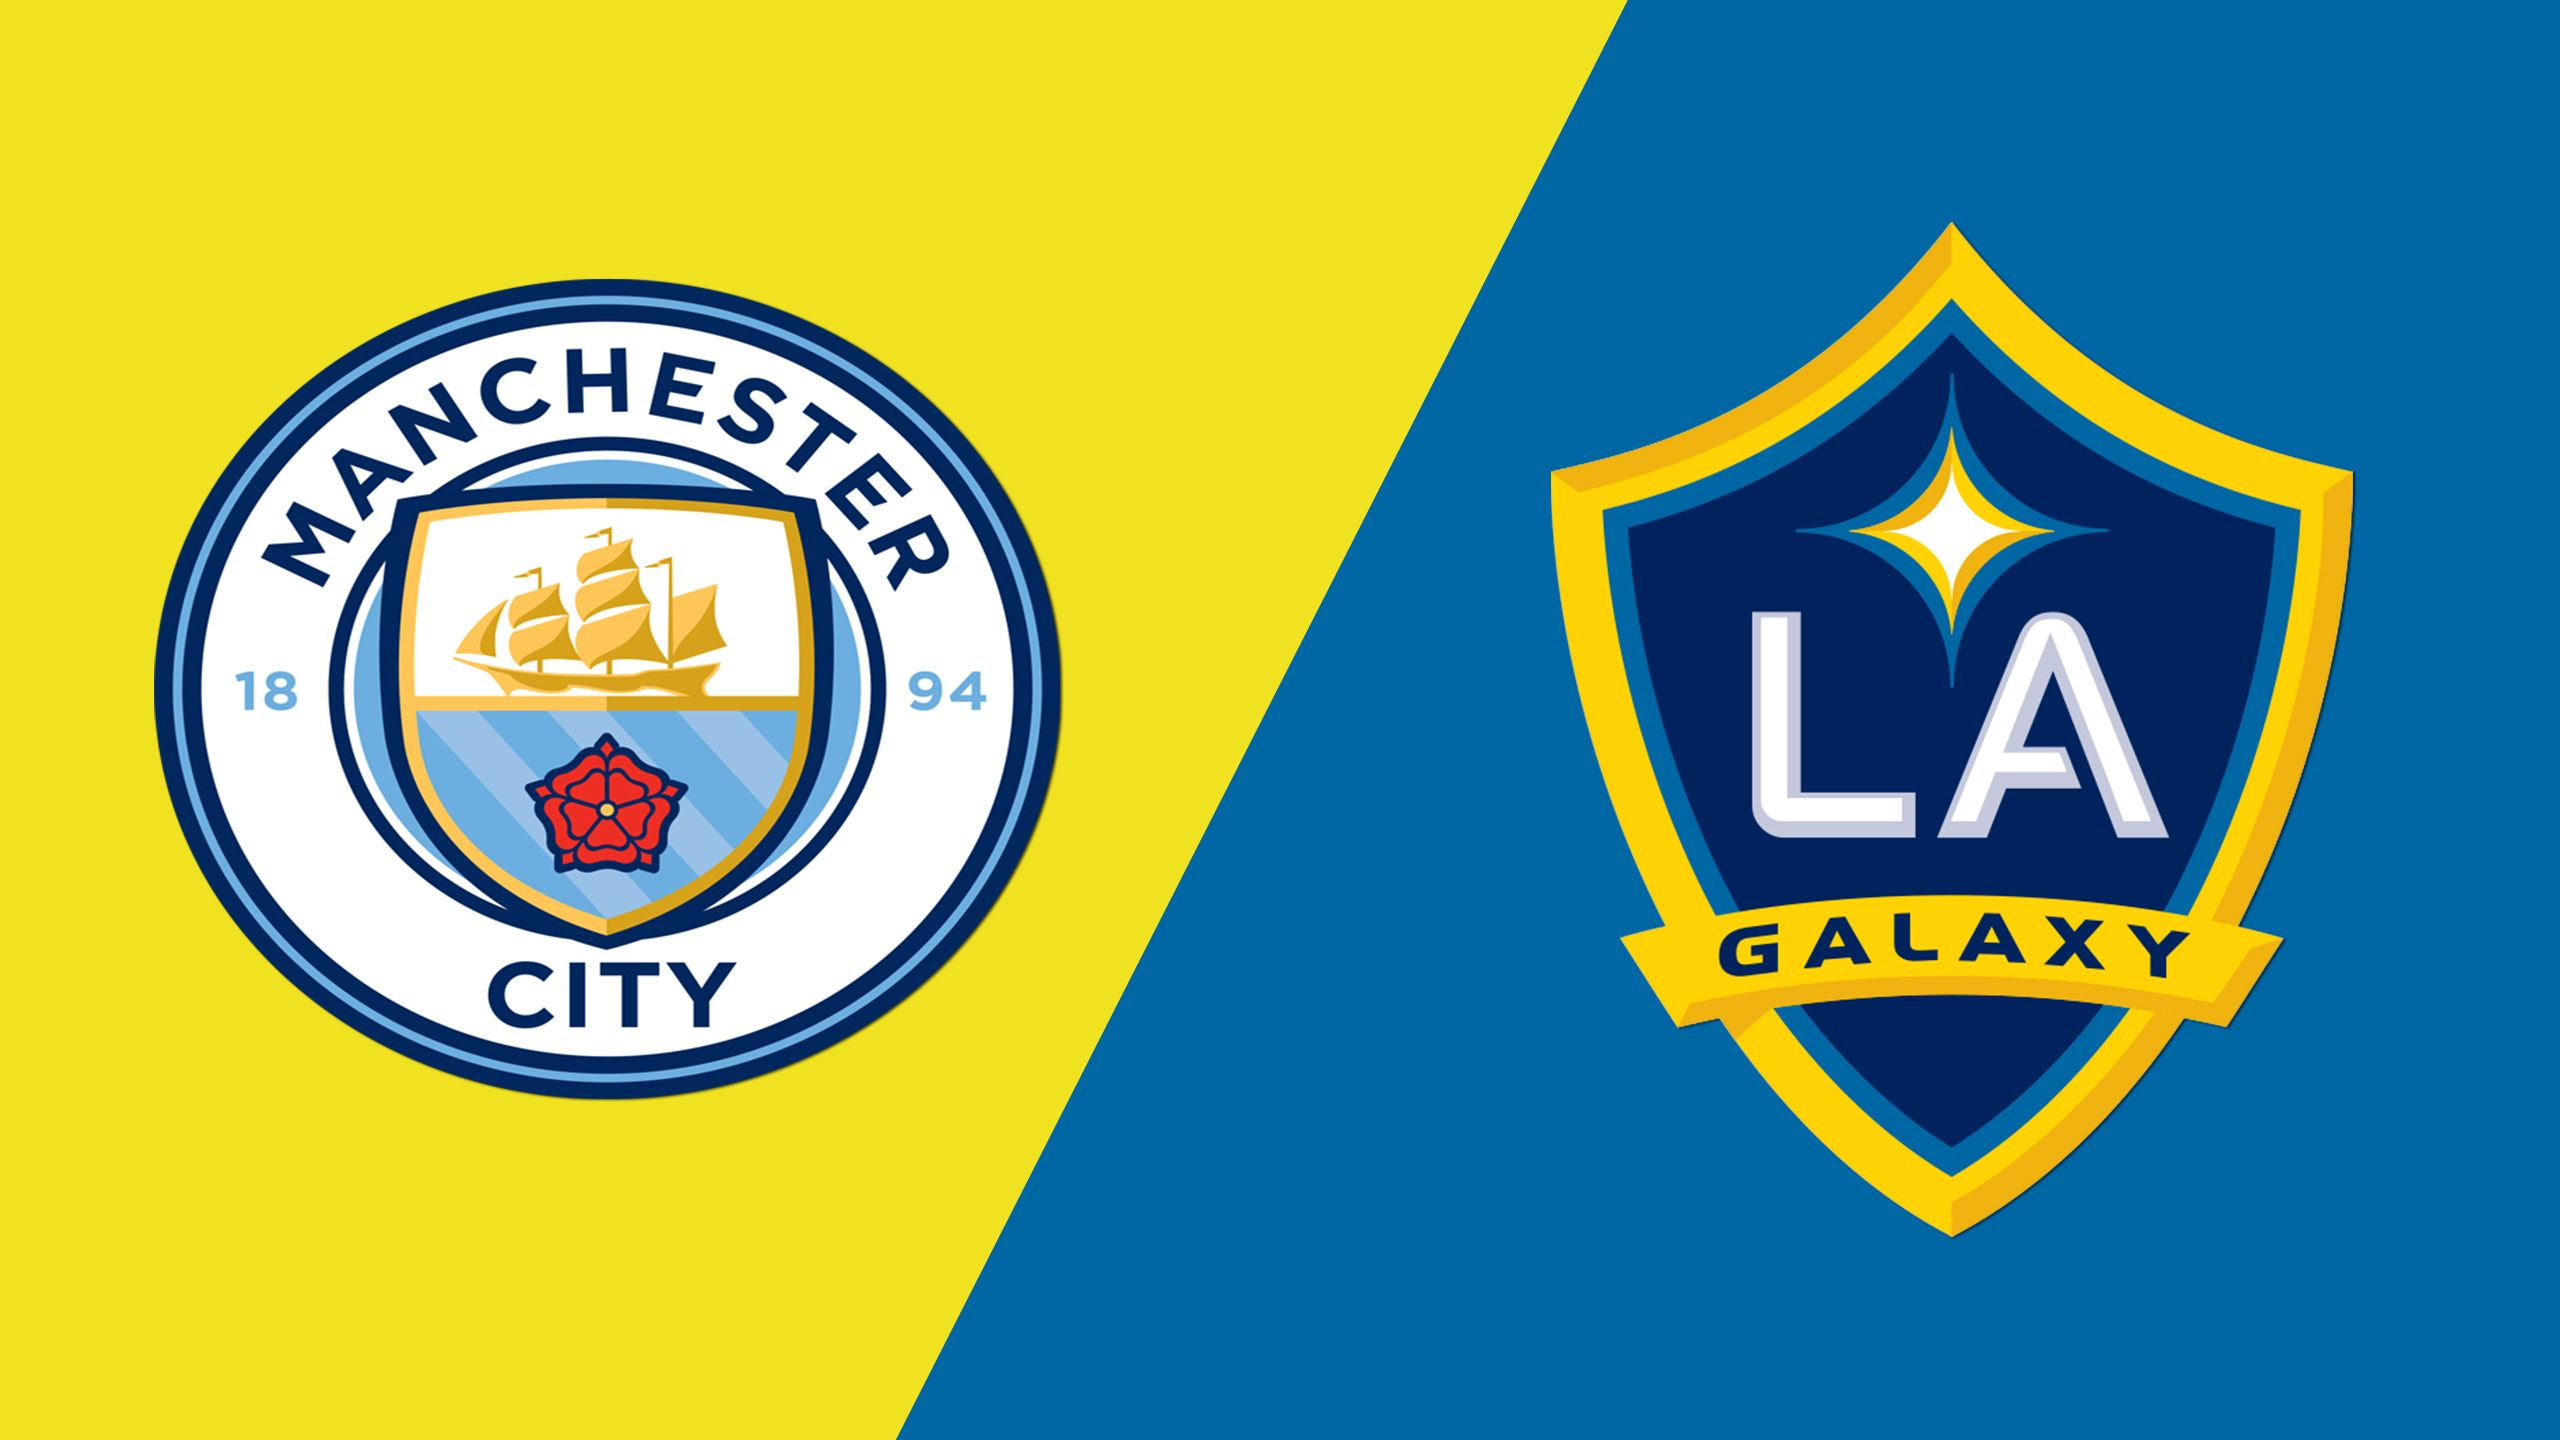 Manchester City Under-14 vs. LA Galaxy Under-14 (Manchester City Cup)